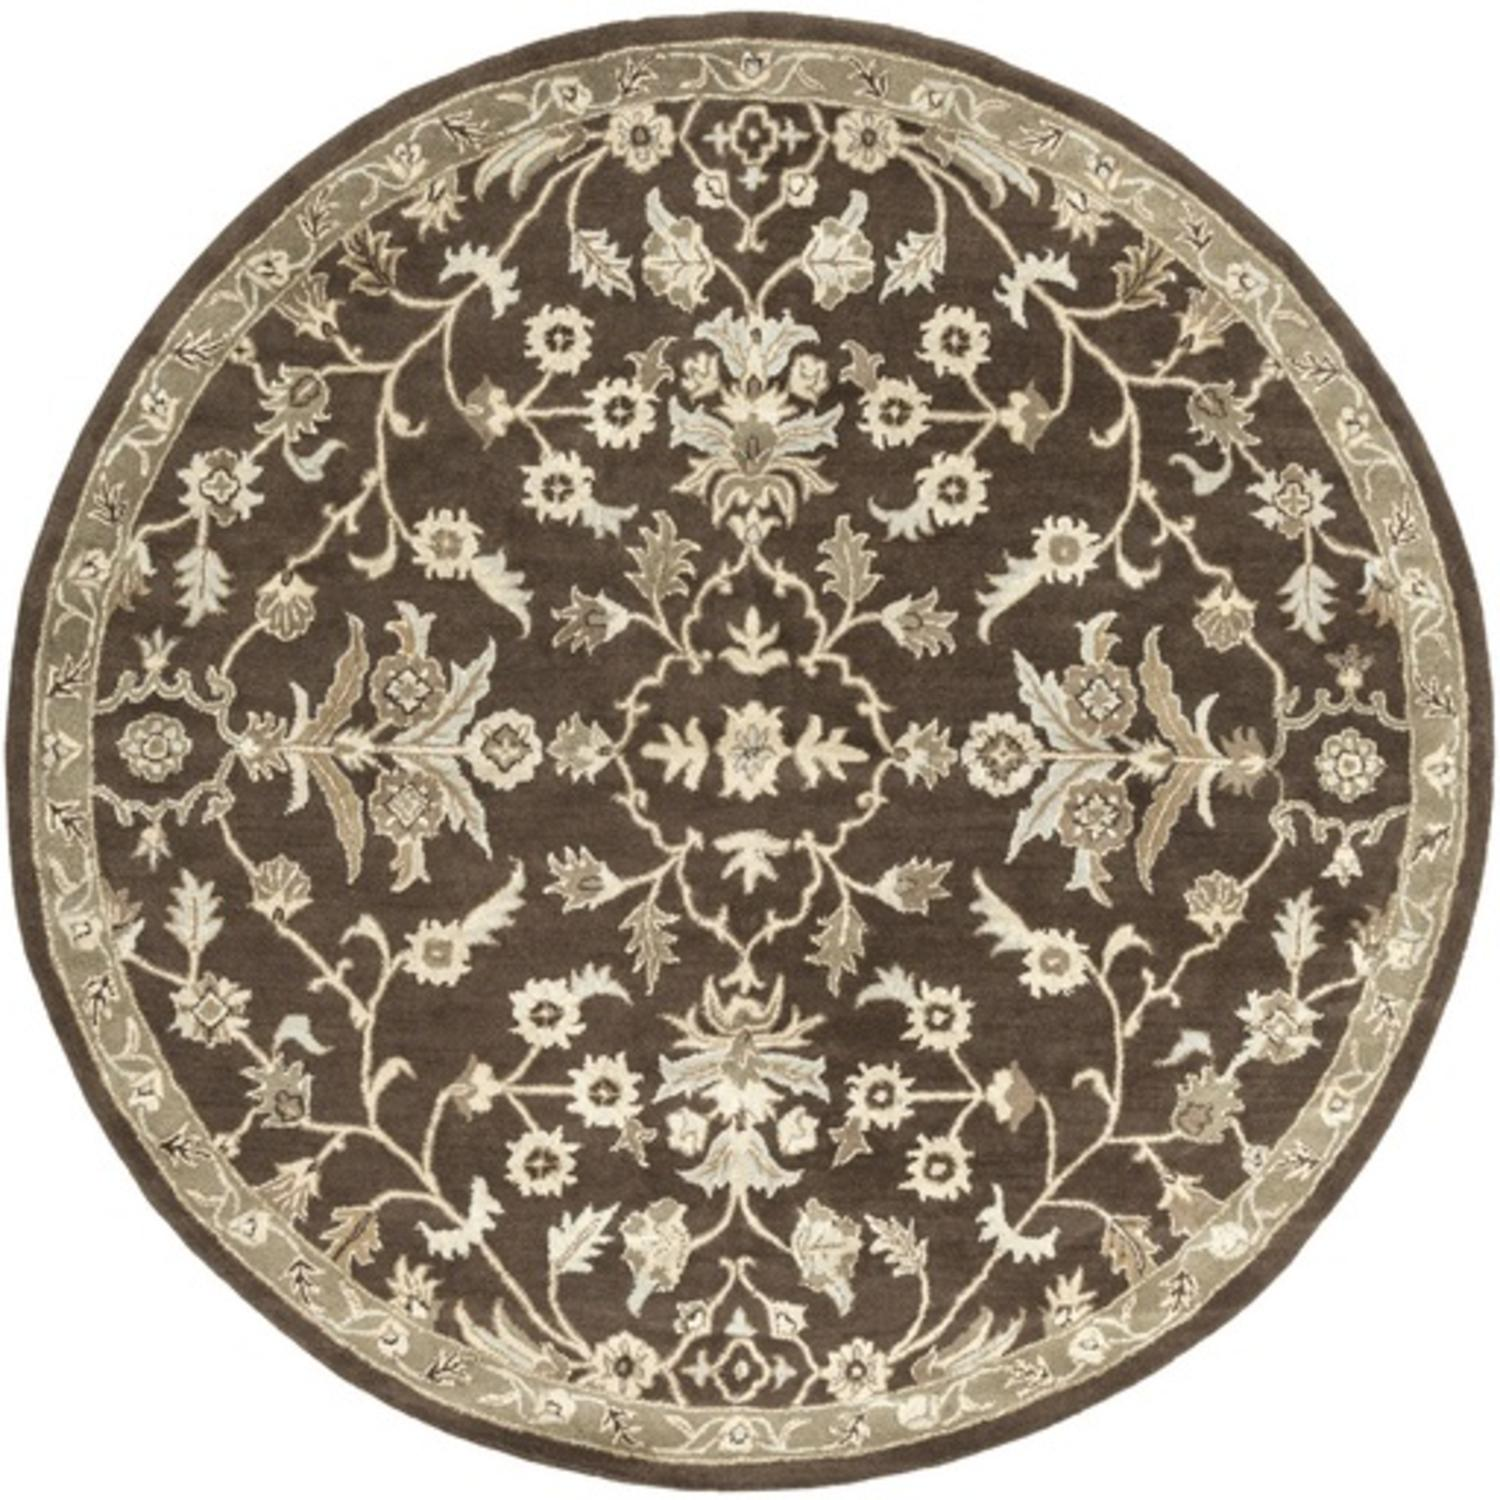 8' French Elegance Chocolate Brown, Gray and Cream Round Hand Tufted Wool Area Throw Rug